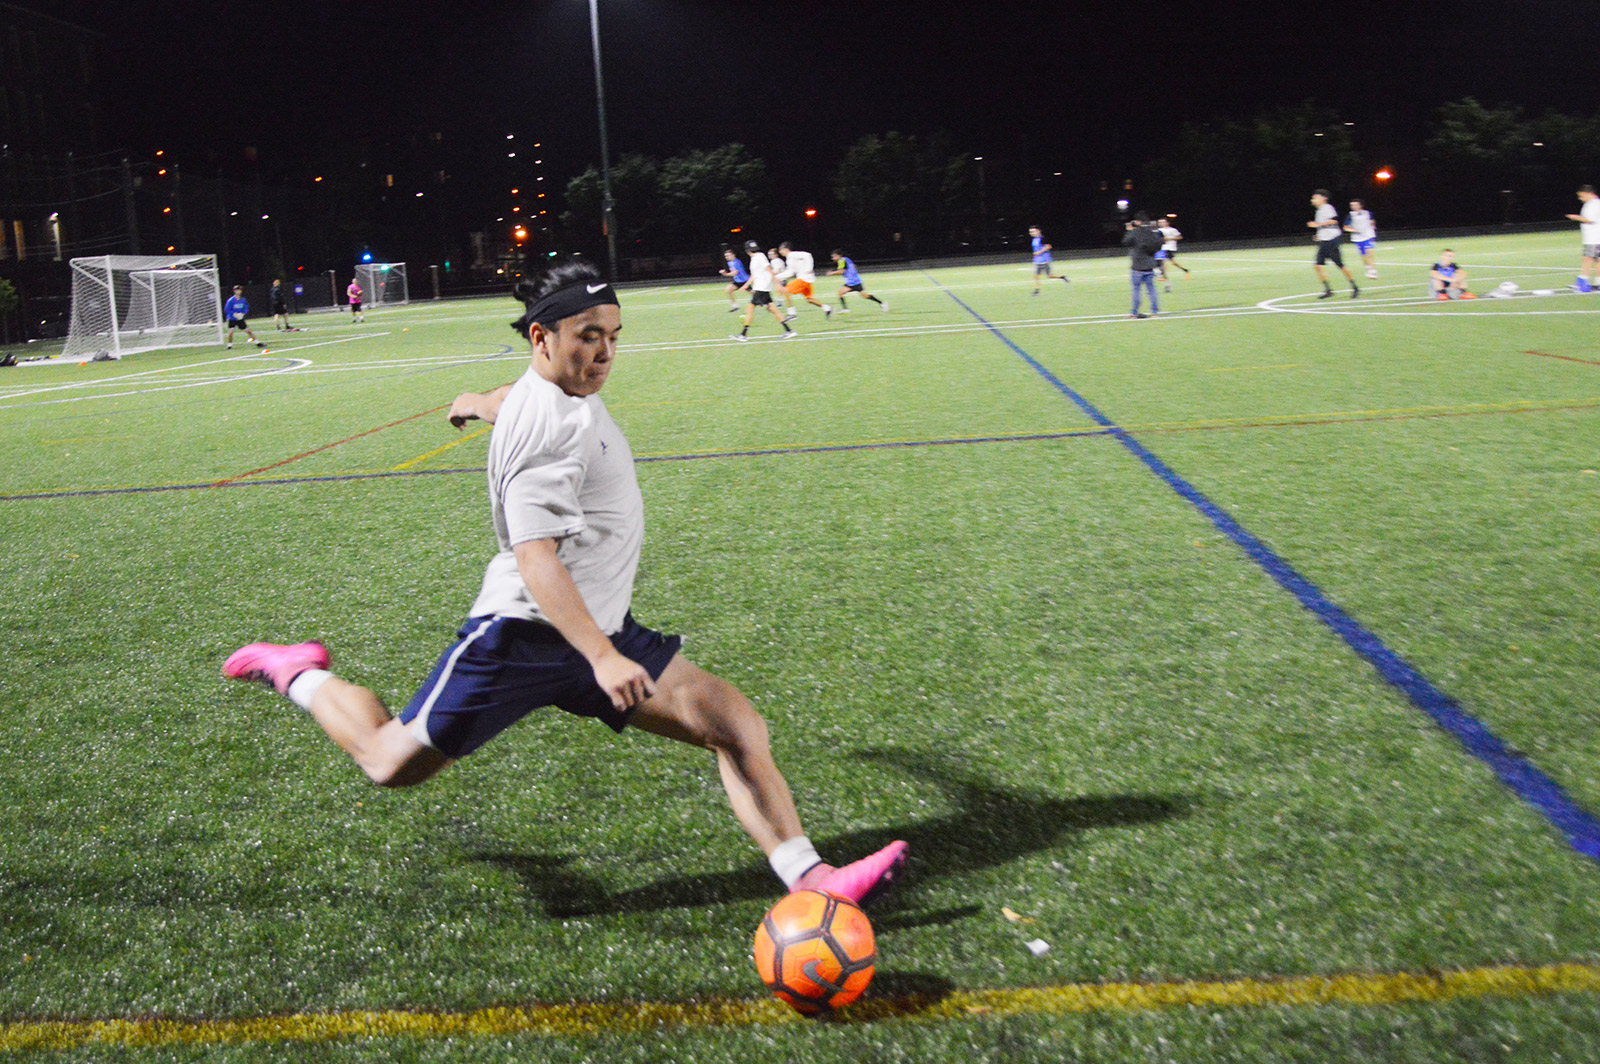 student playing soccer on campus rec complex turf field